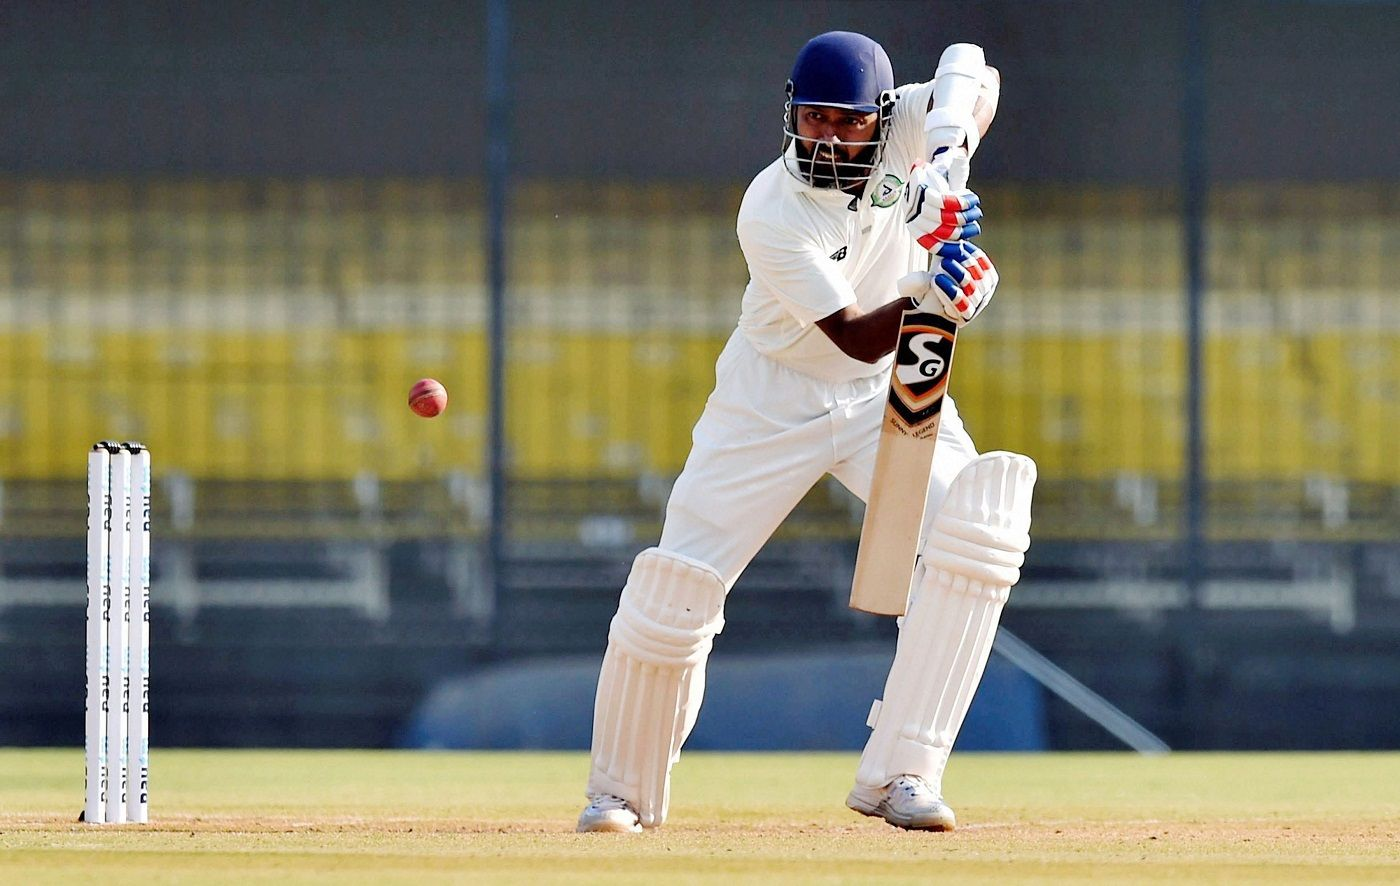 Wasim Jaffer continues to churn out runs well past 40.